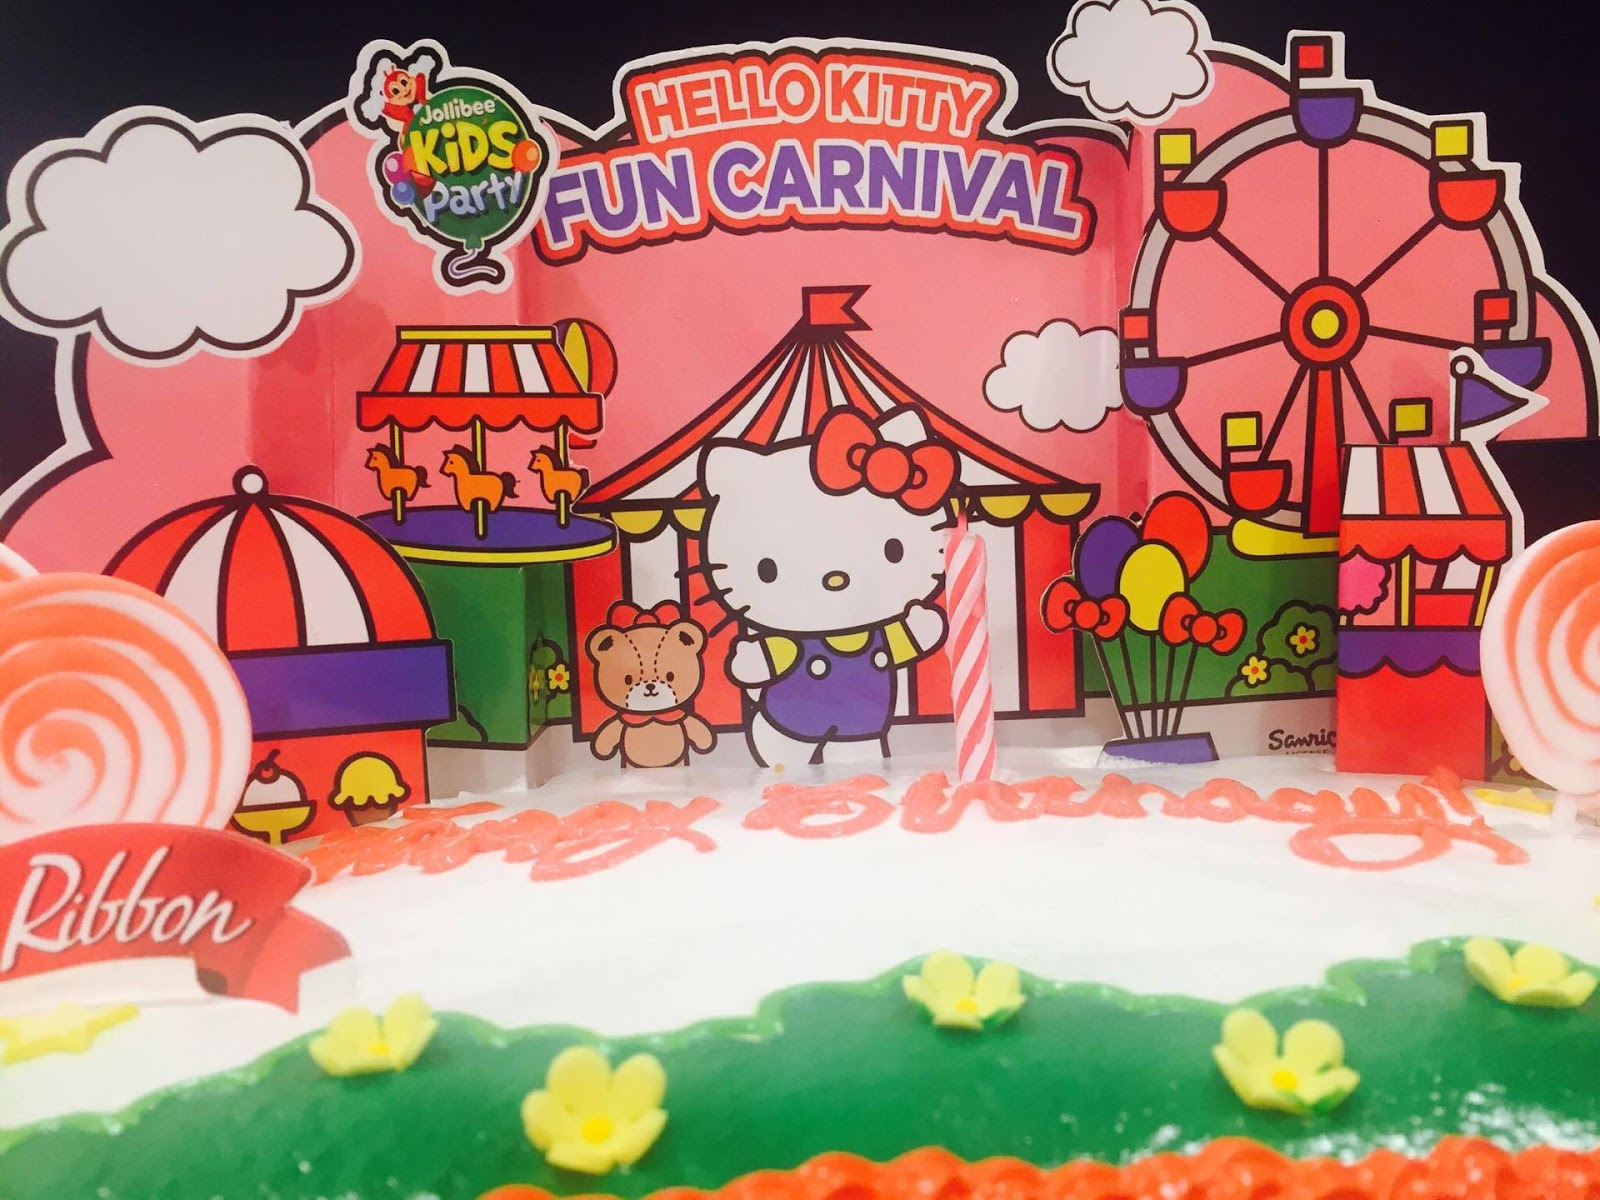 Jollibee Introduces Hello Kitty Fun Carnival Party Viva Manilena